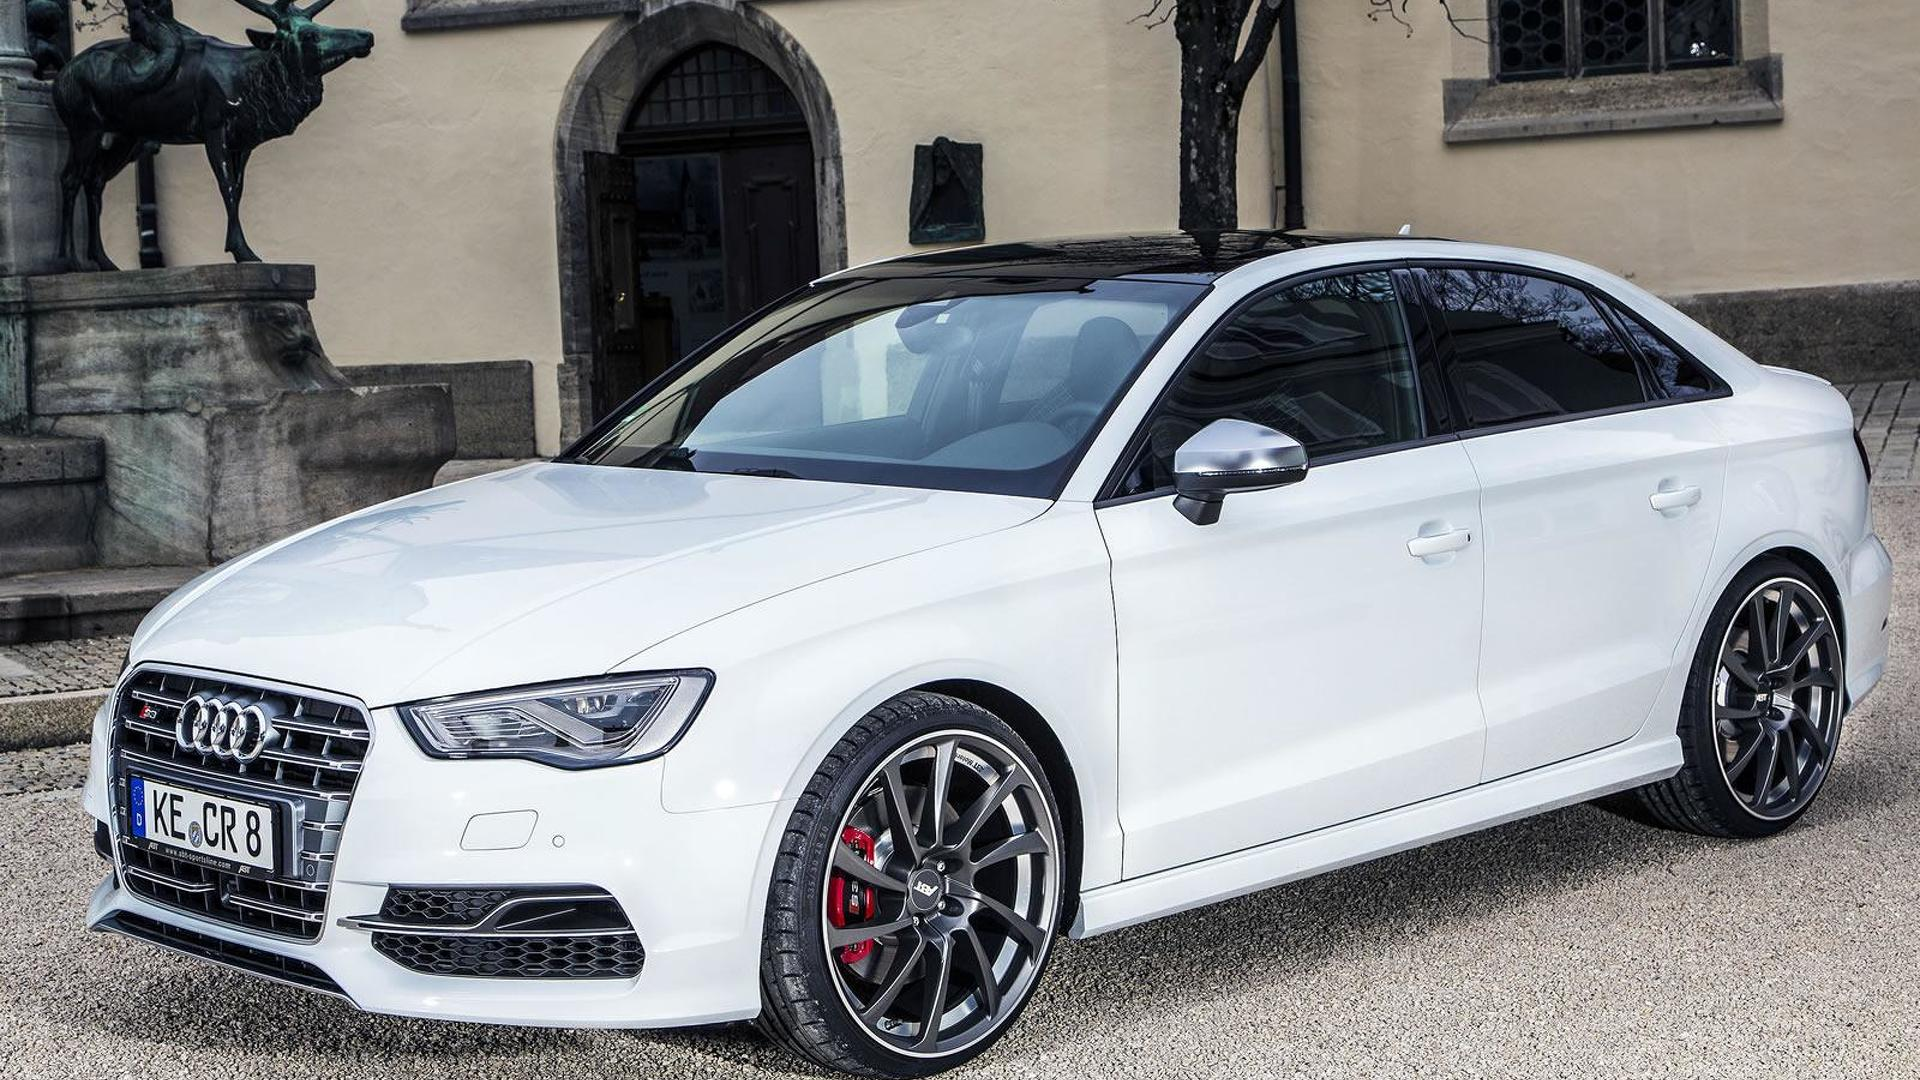 Audi S Sedan Tuned By ABT To PS - Audi s3